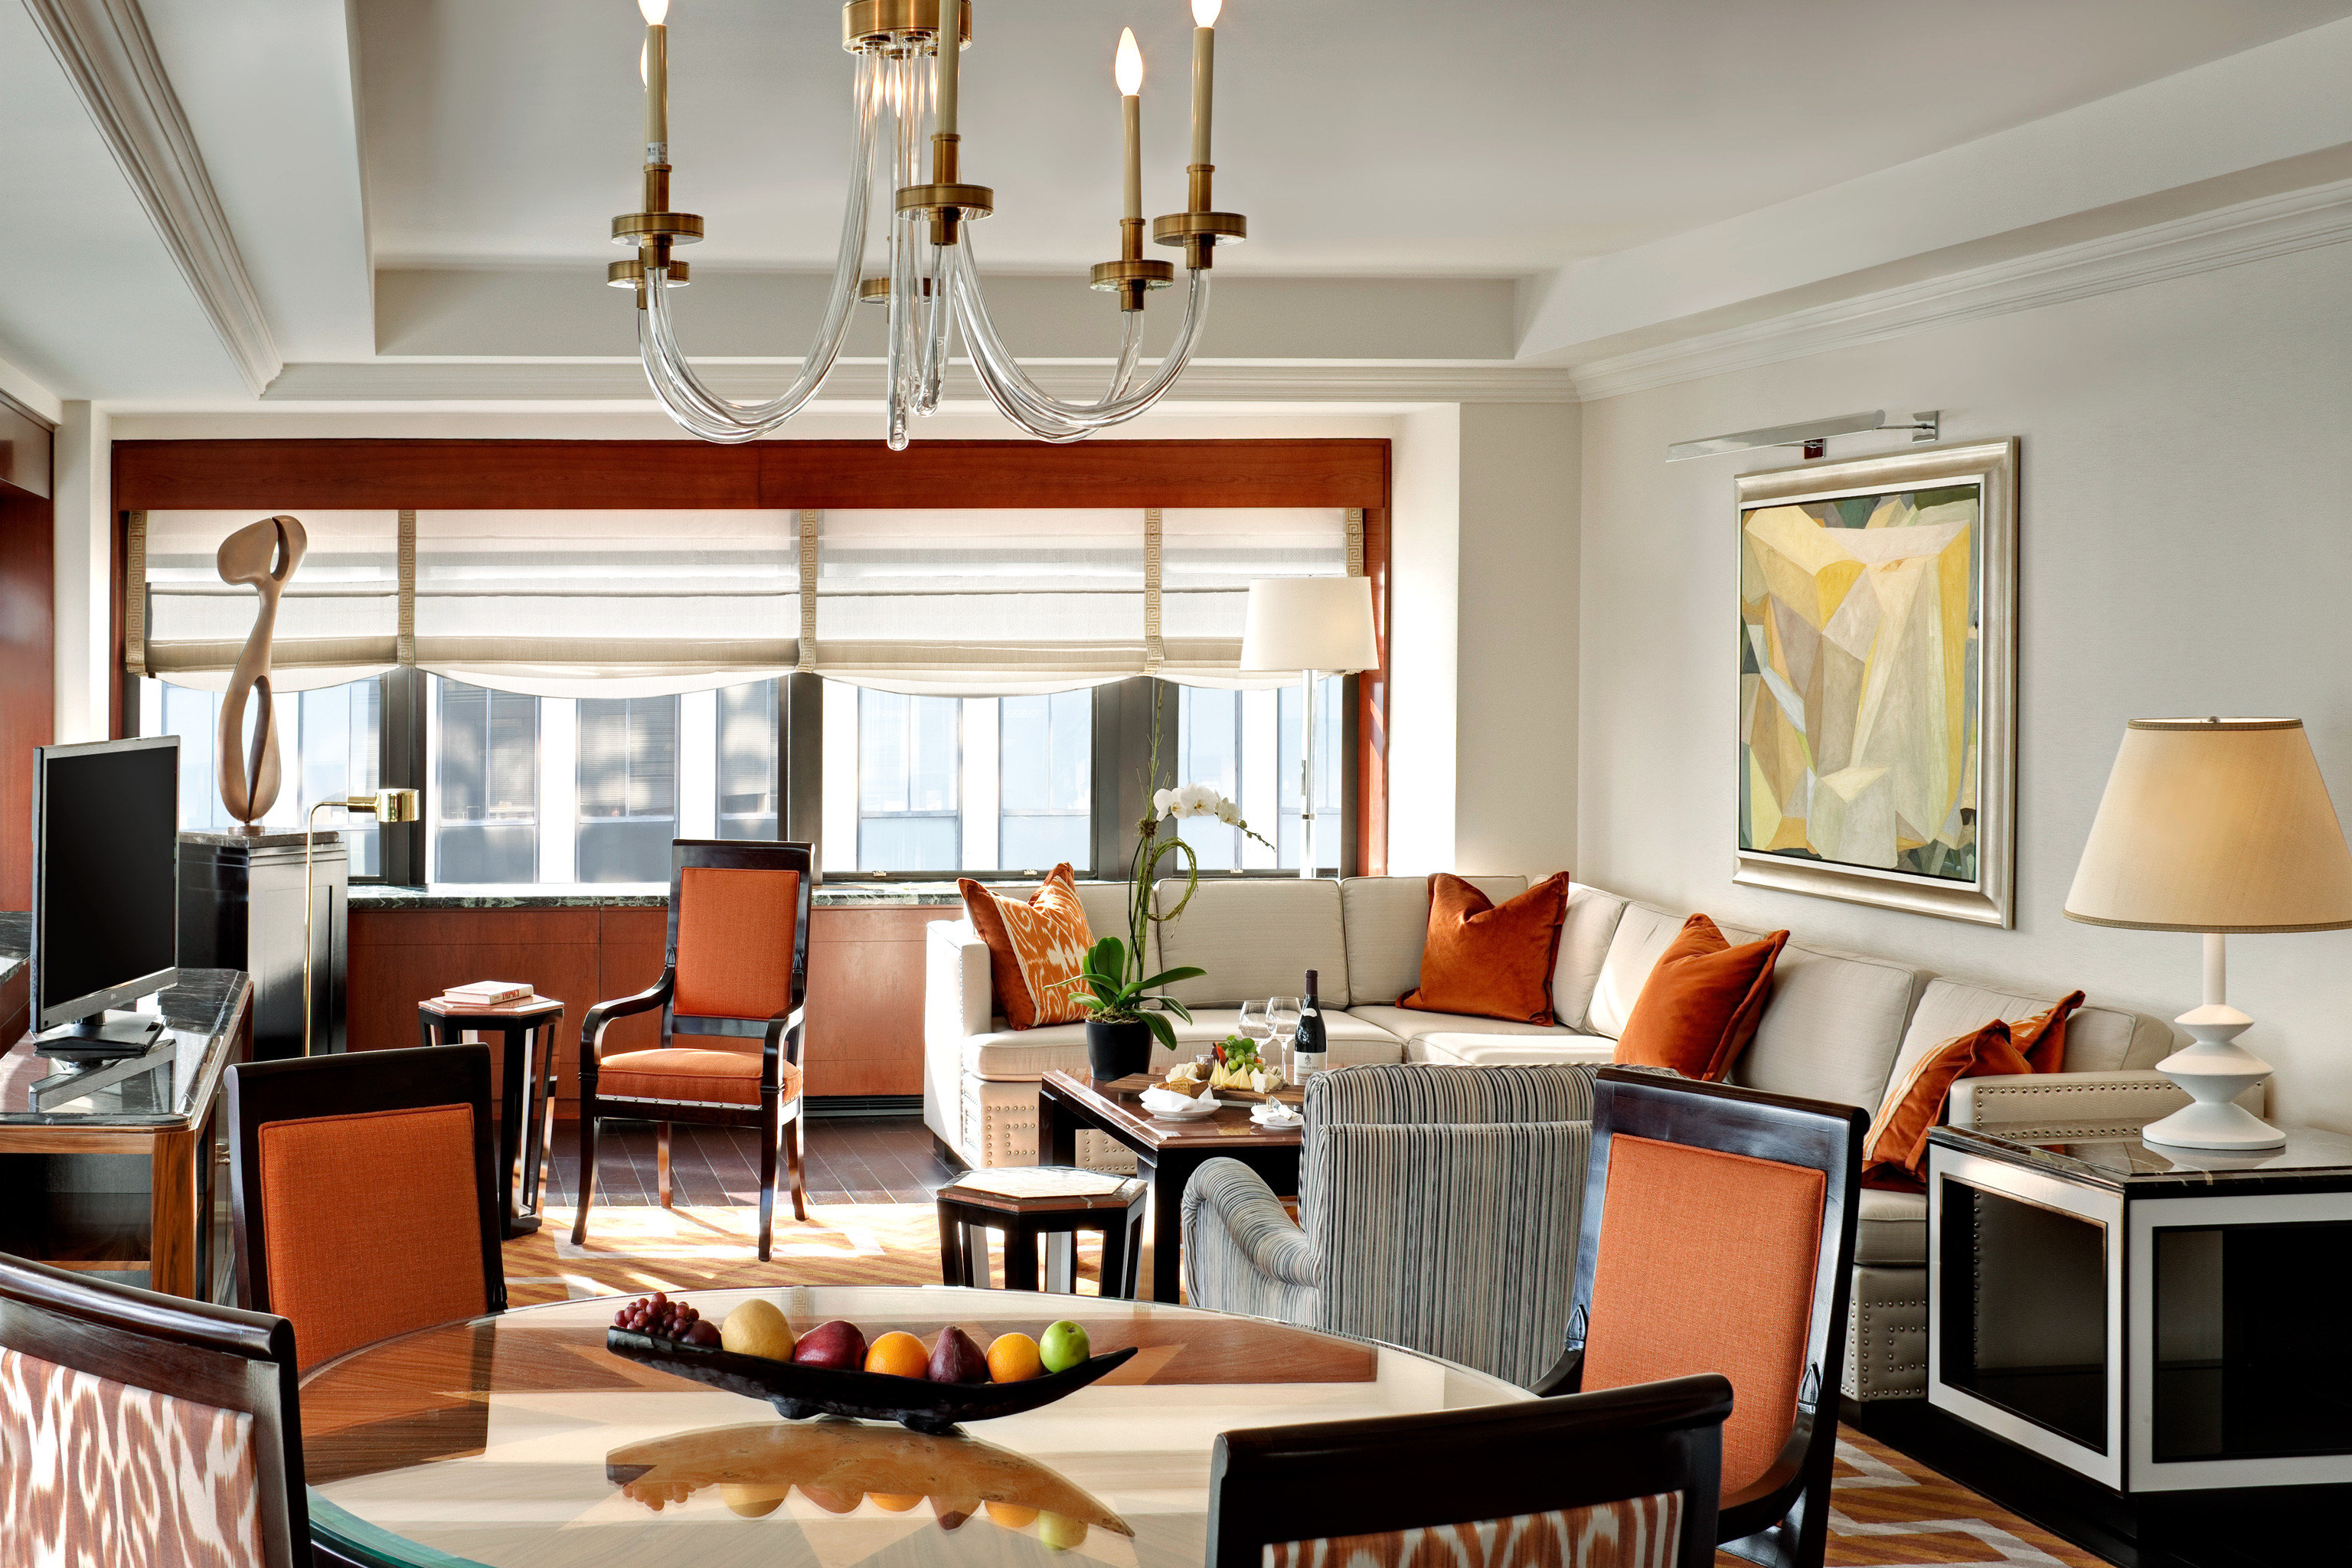 City Historic Modern Suite living room chair property home Dining condominium cottage leather